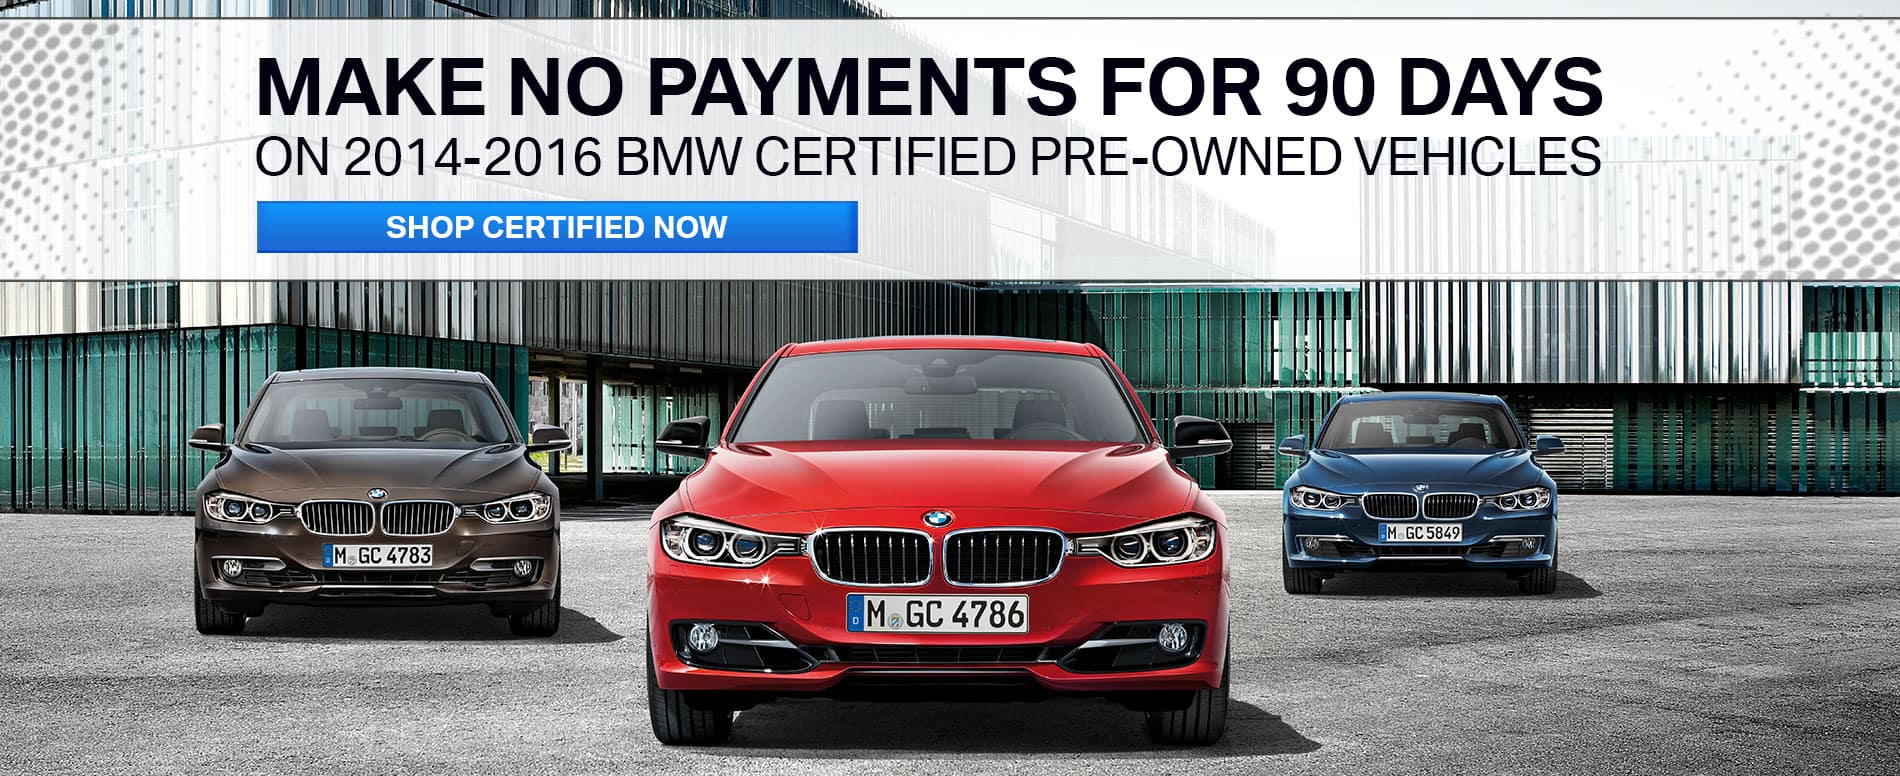 Shop Certified Pre-Owned BMW Offers